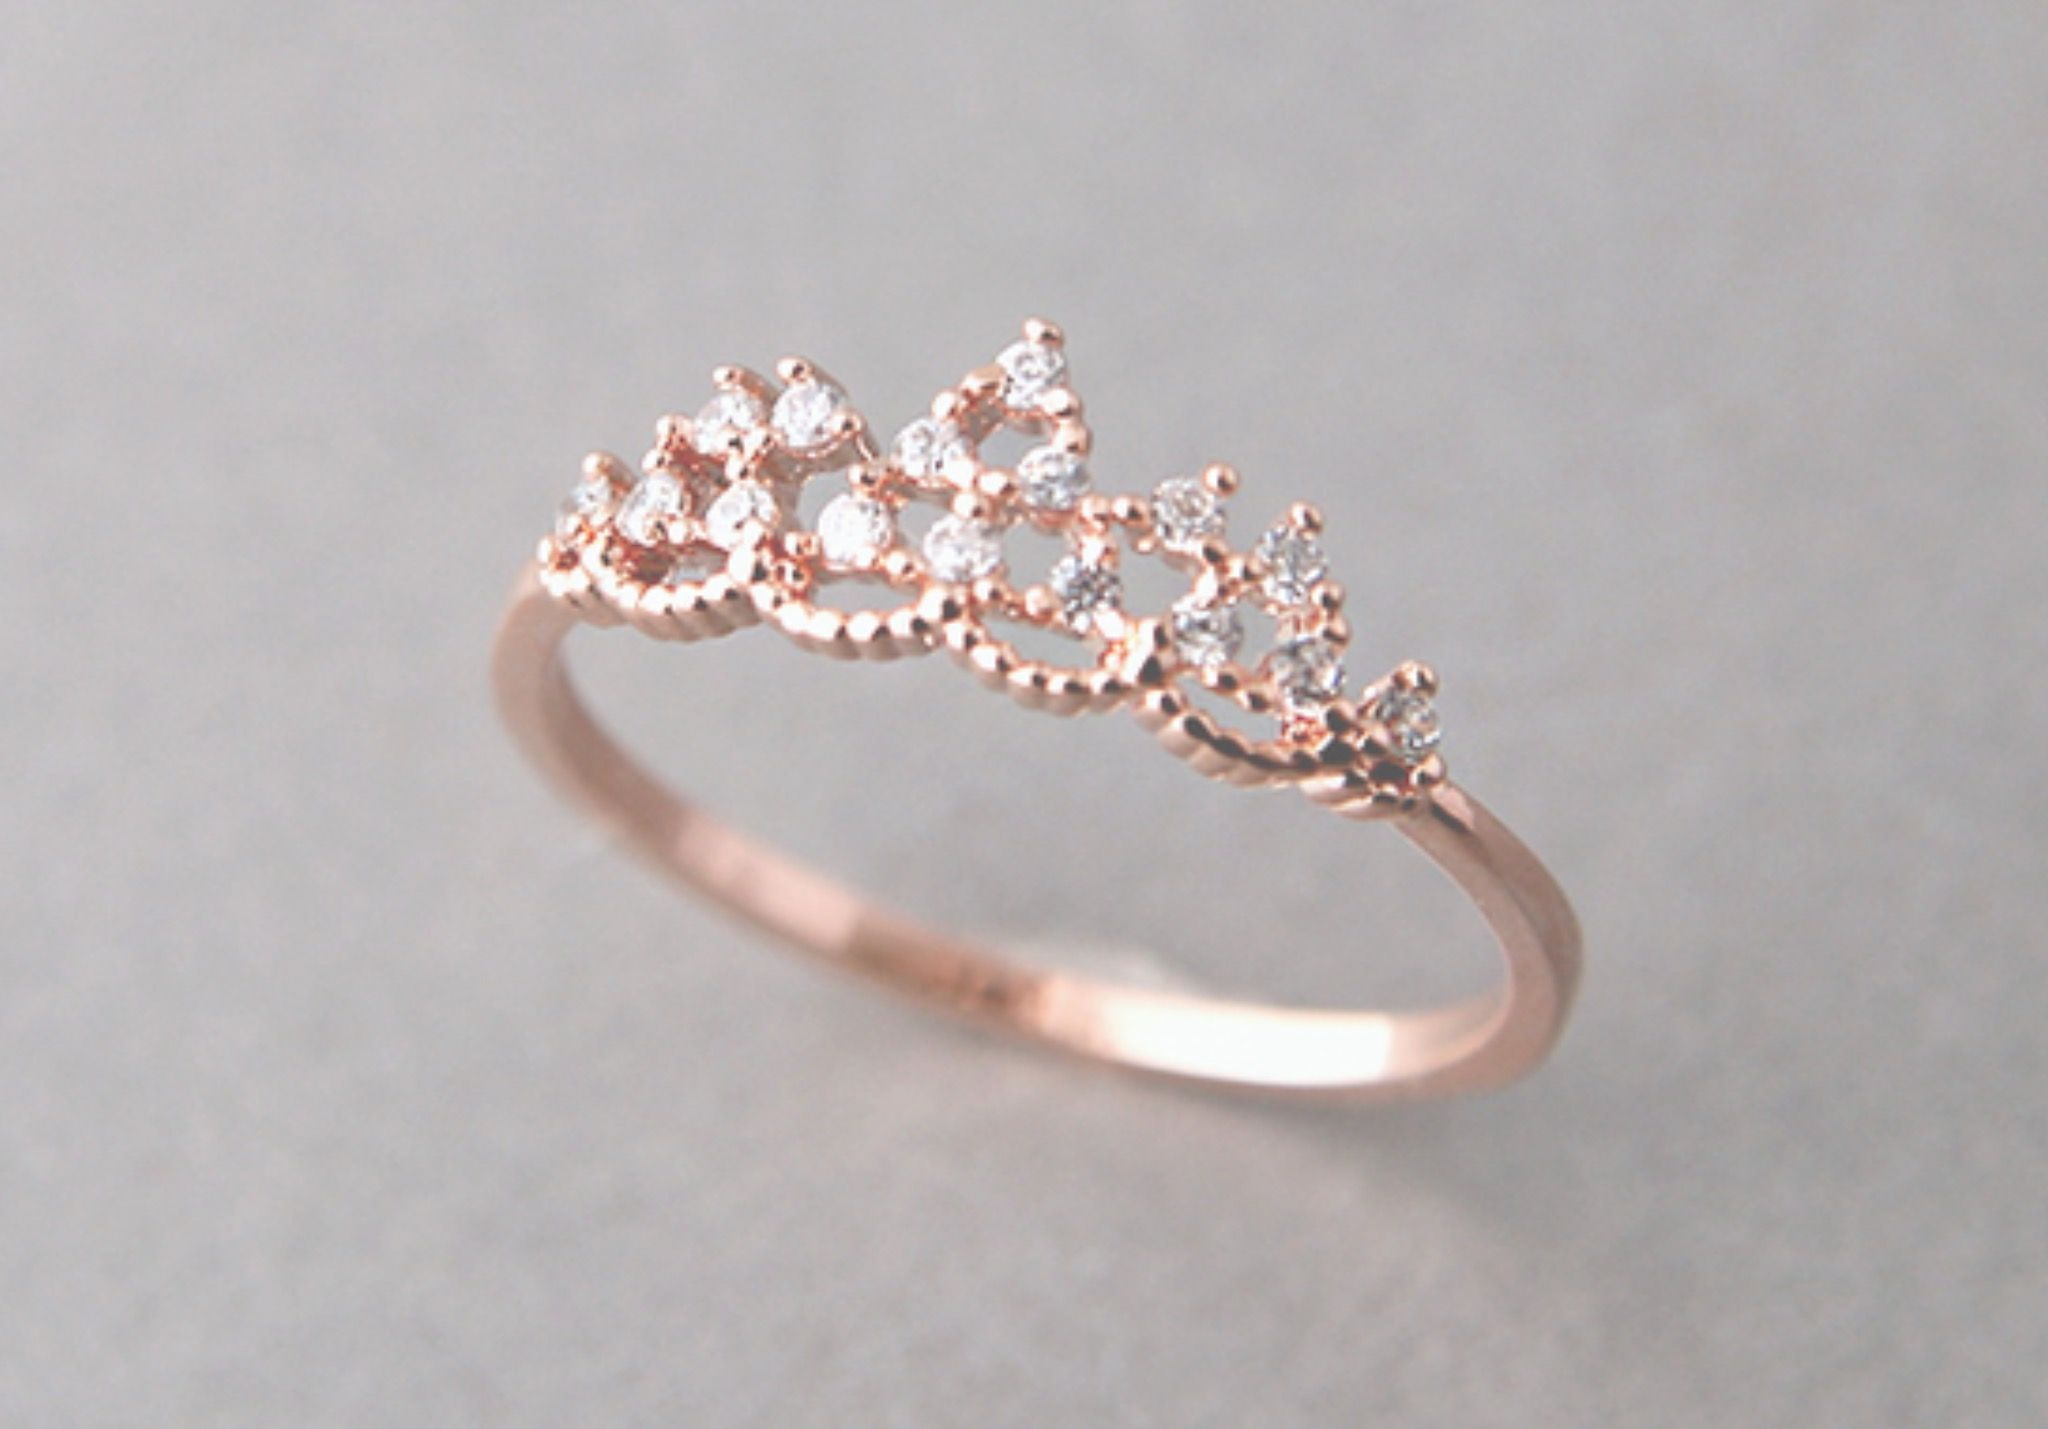 46c841db4 Rose Gold Ring | J E W E L R Y | Jewelry, Princess tiara ring, Tiara ...